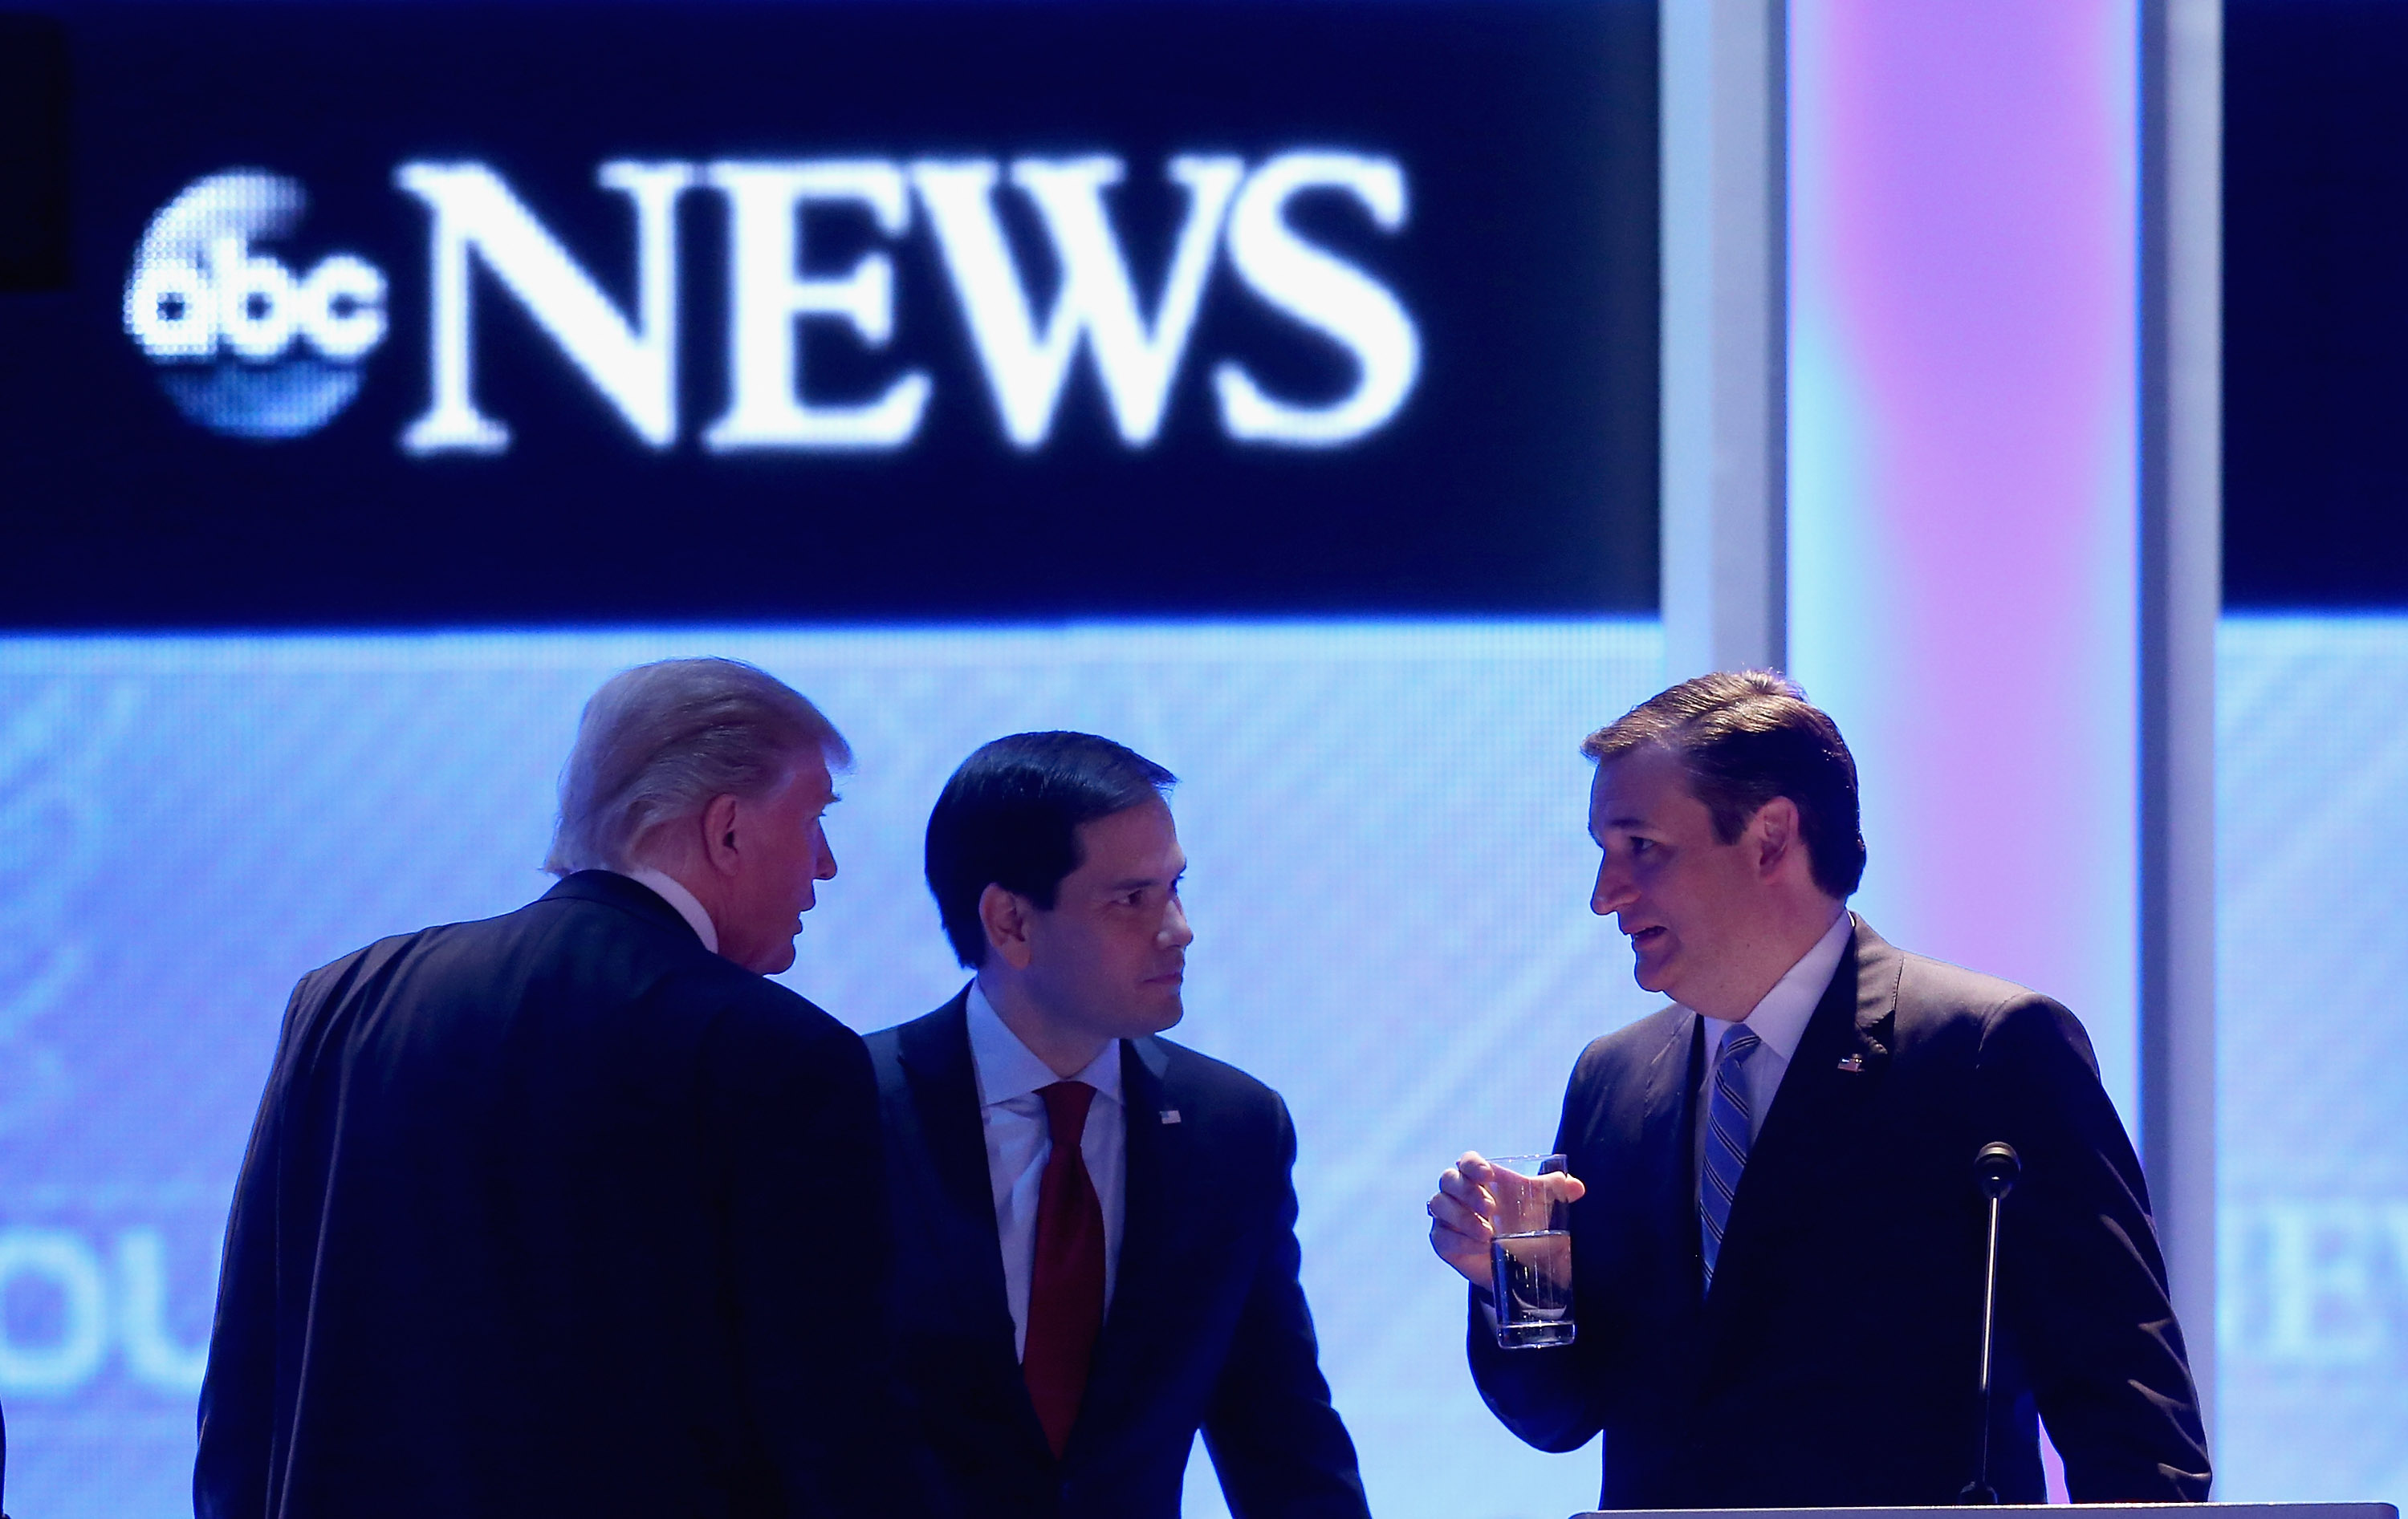 Republican leaders gather prior to a debate